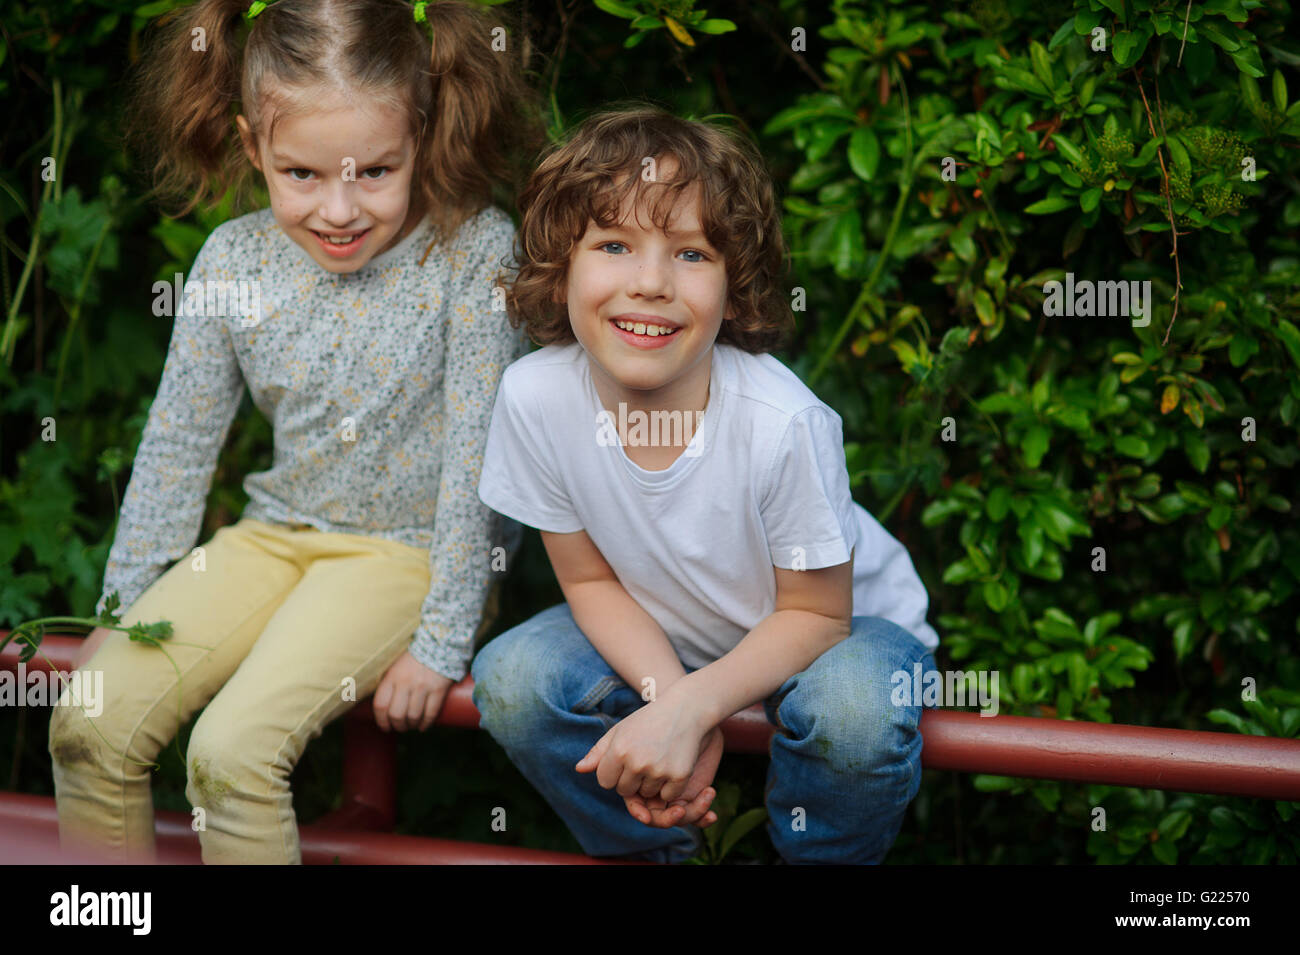 Boy and girl sitting on the fence near the green bush - Stock Image